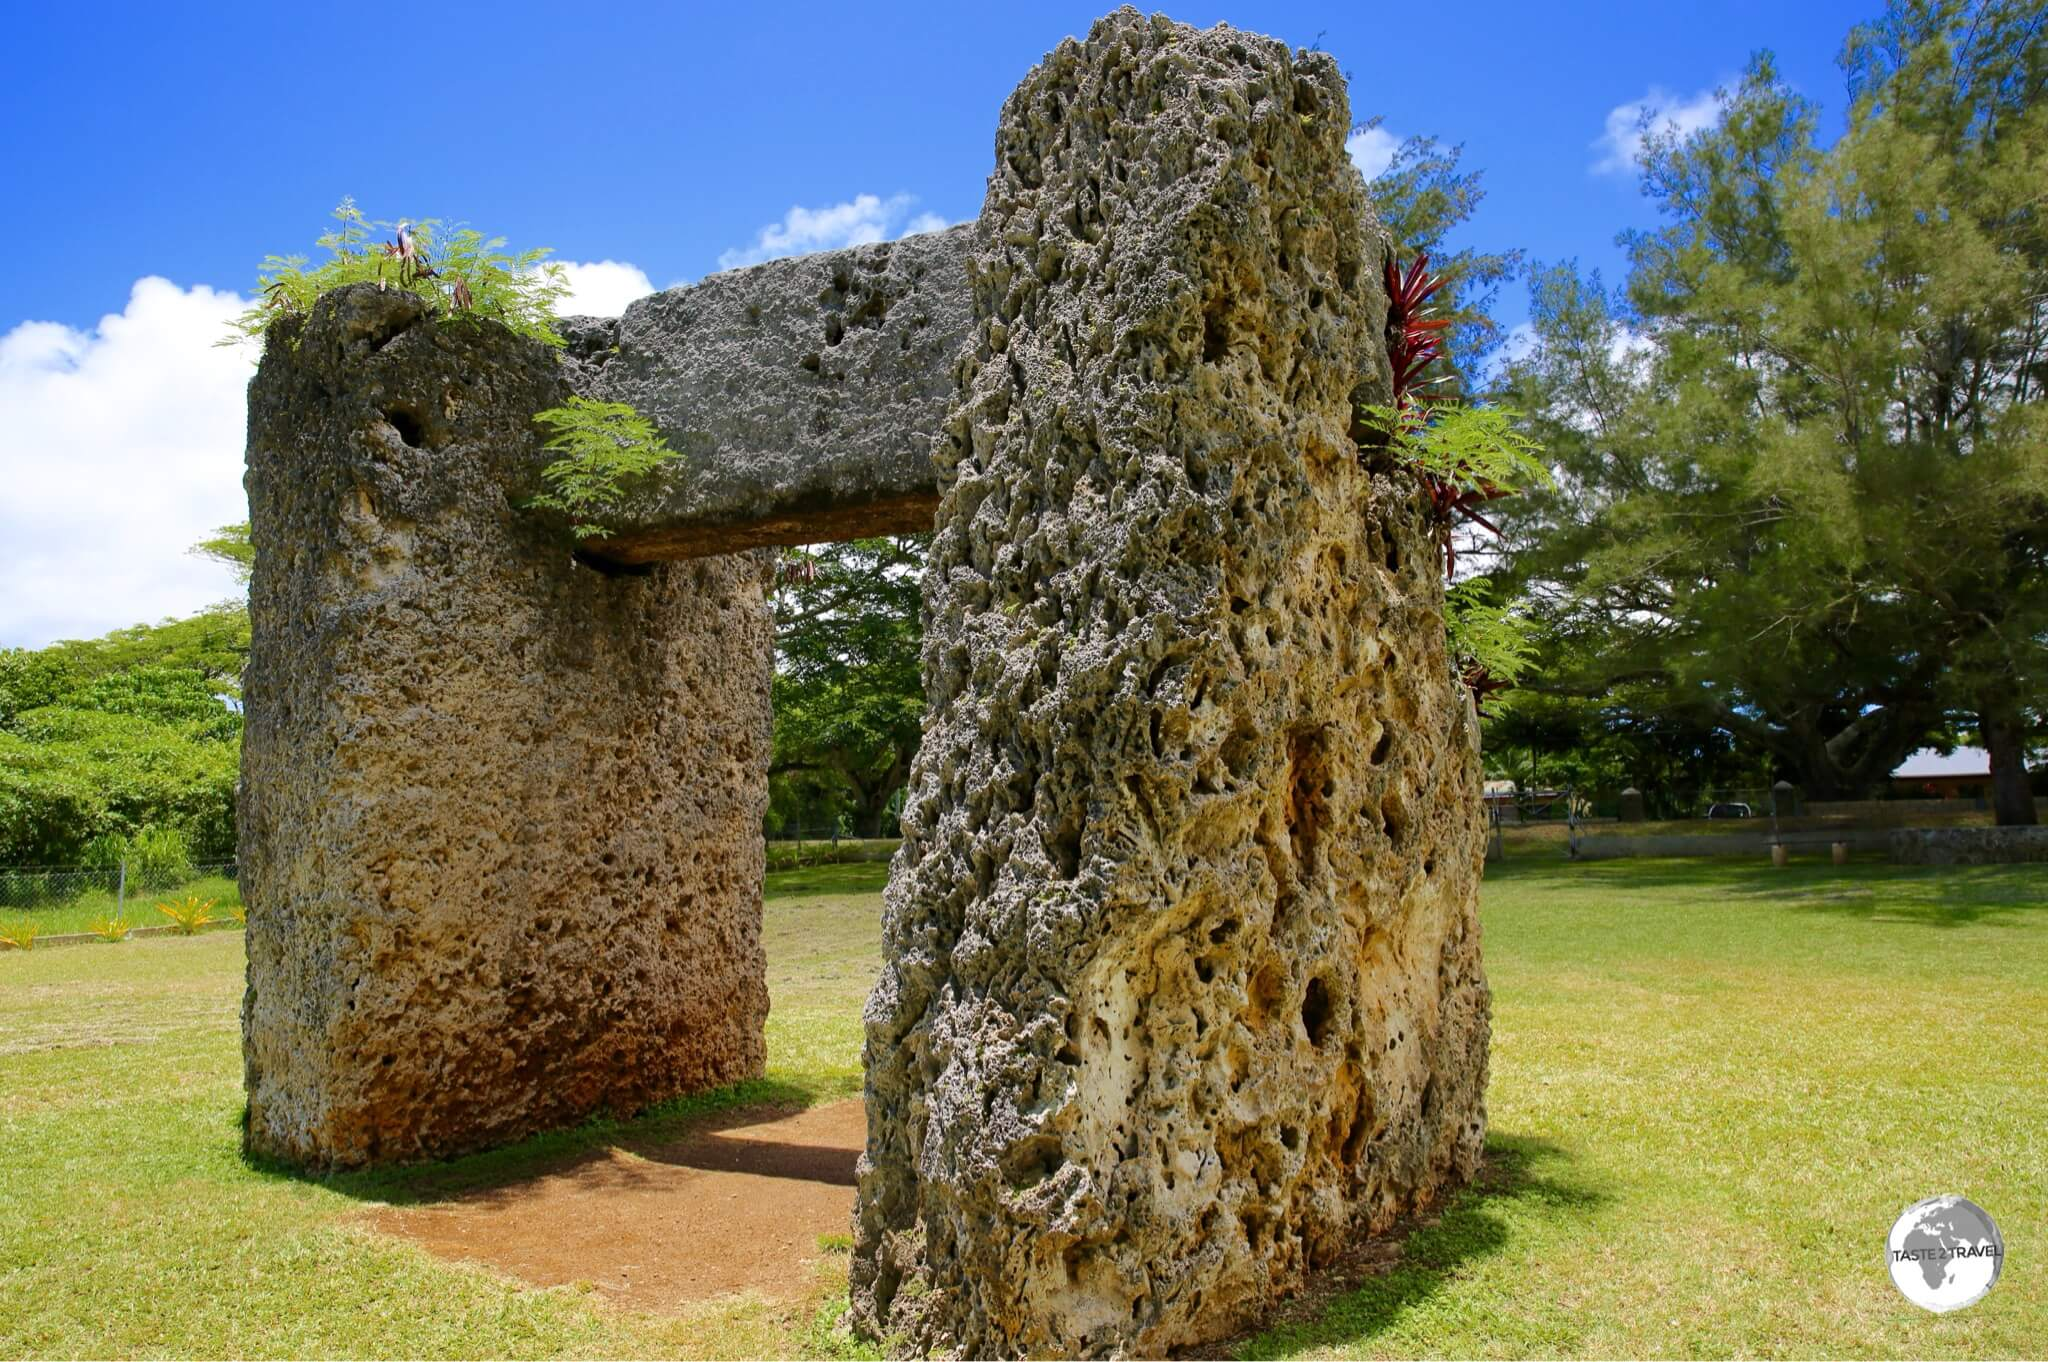 The Ha'amonga a Maui stands as an impressive monument to the ingenuity of the ancient Polynesians.